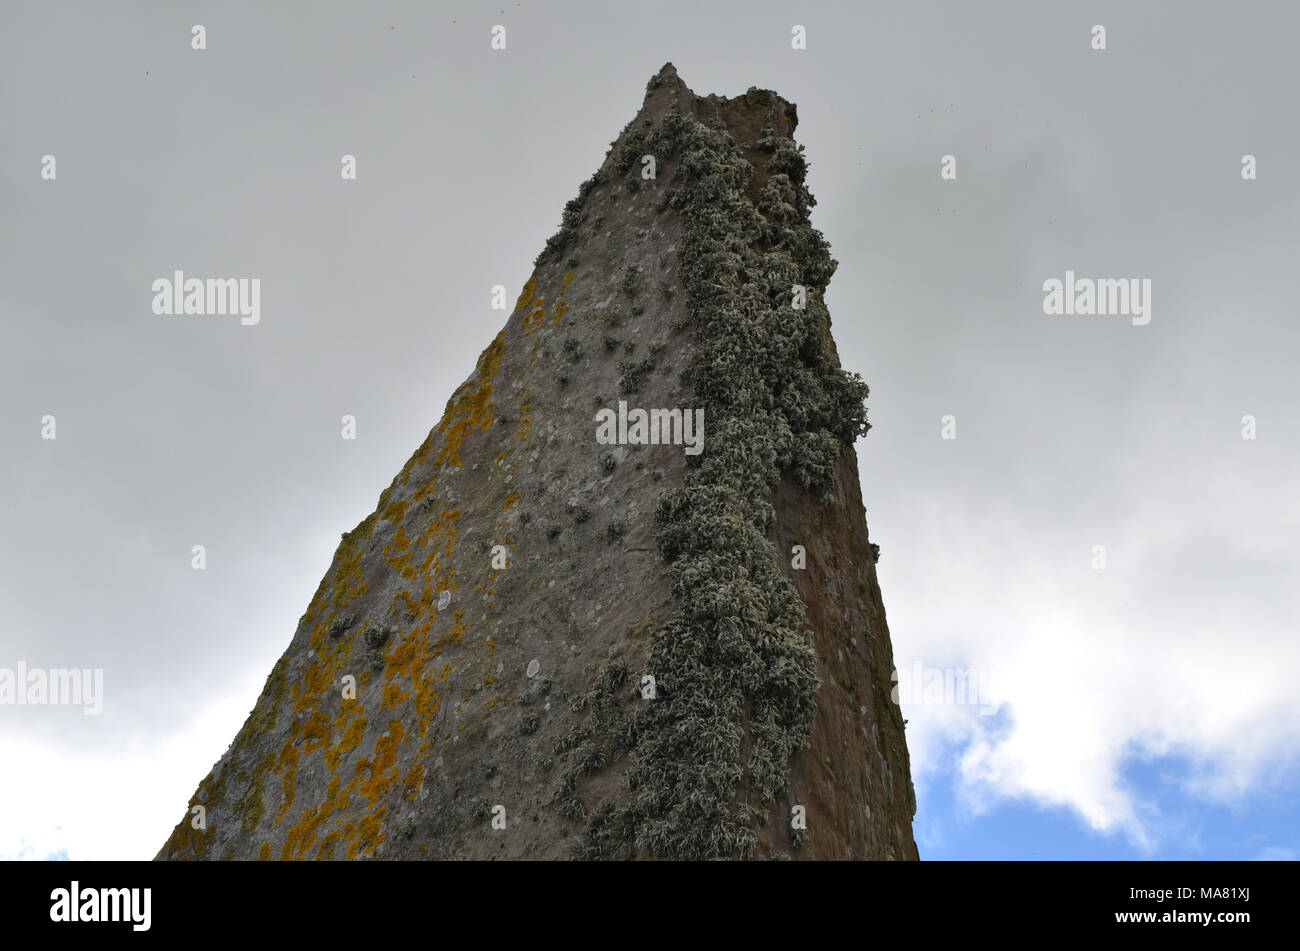 Neolithic Ring of Brodgar in the island of Mainland island, Orkney archipelago, Scotland Stock Photo